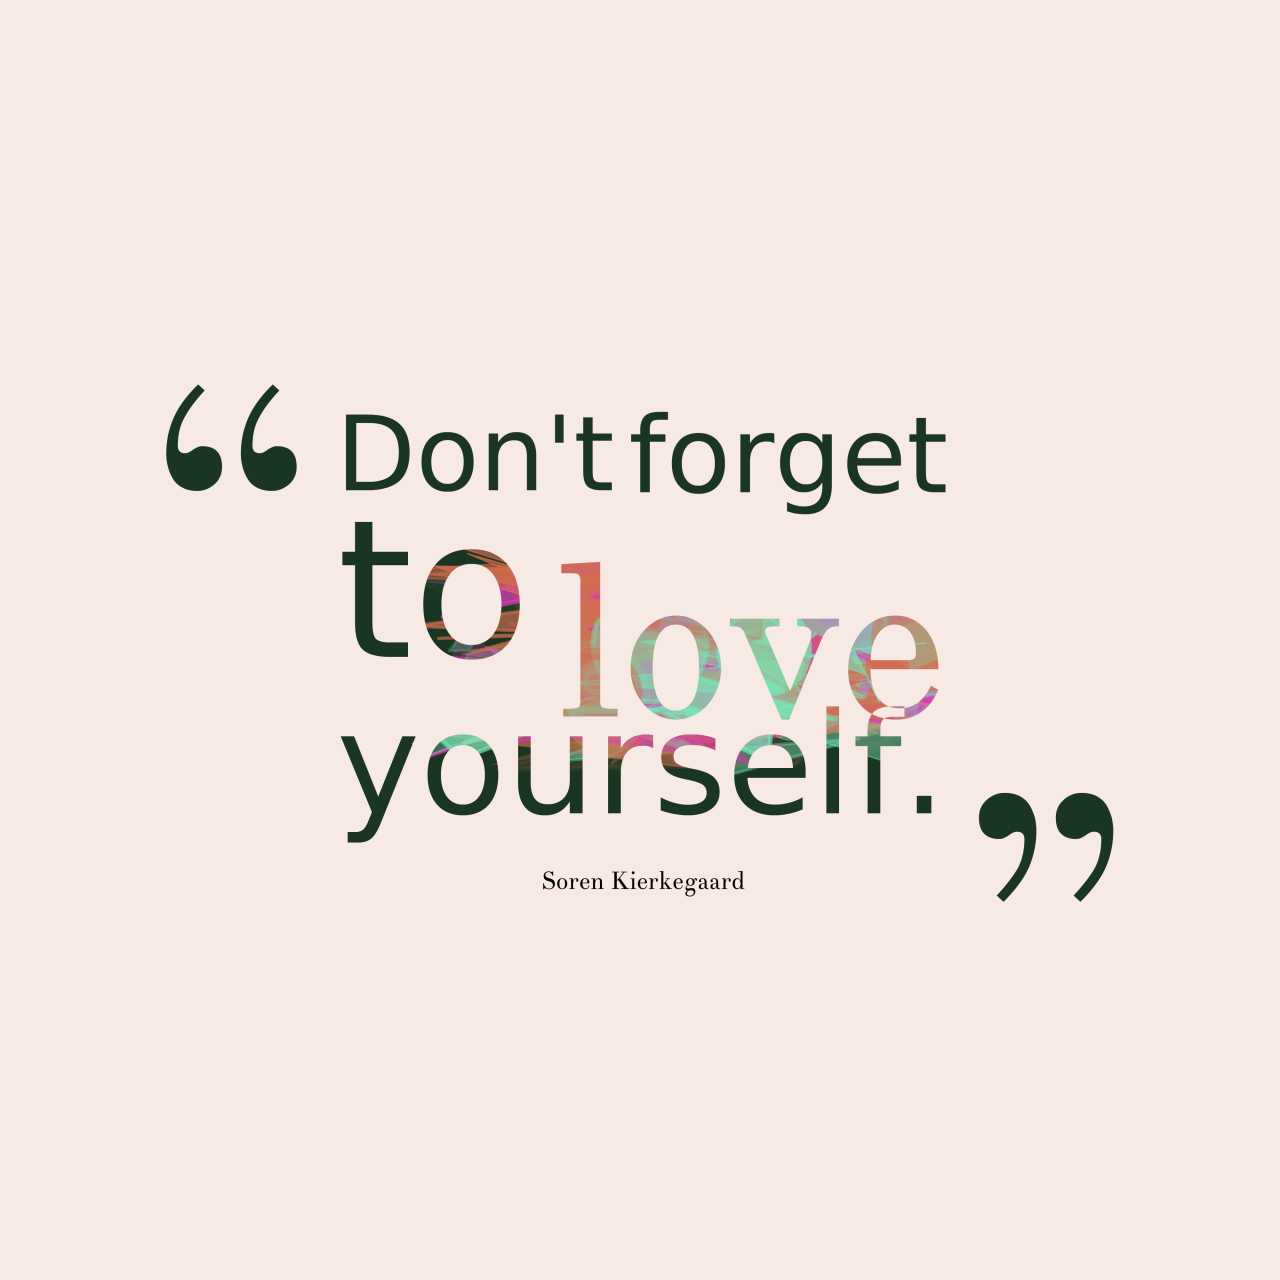 Loving Yourself Quotes Lets Start A Love Yourself Campaign